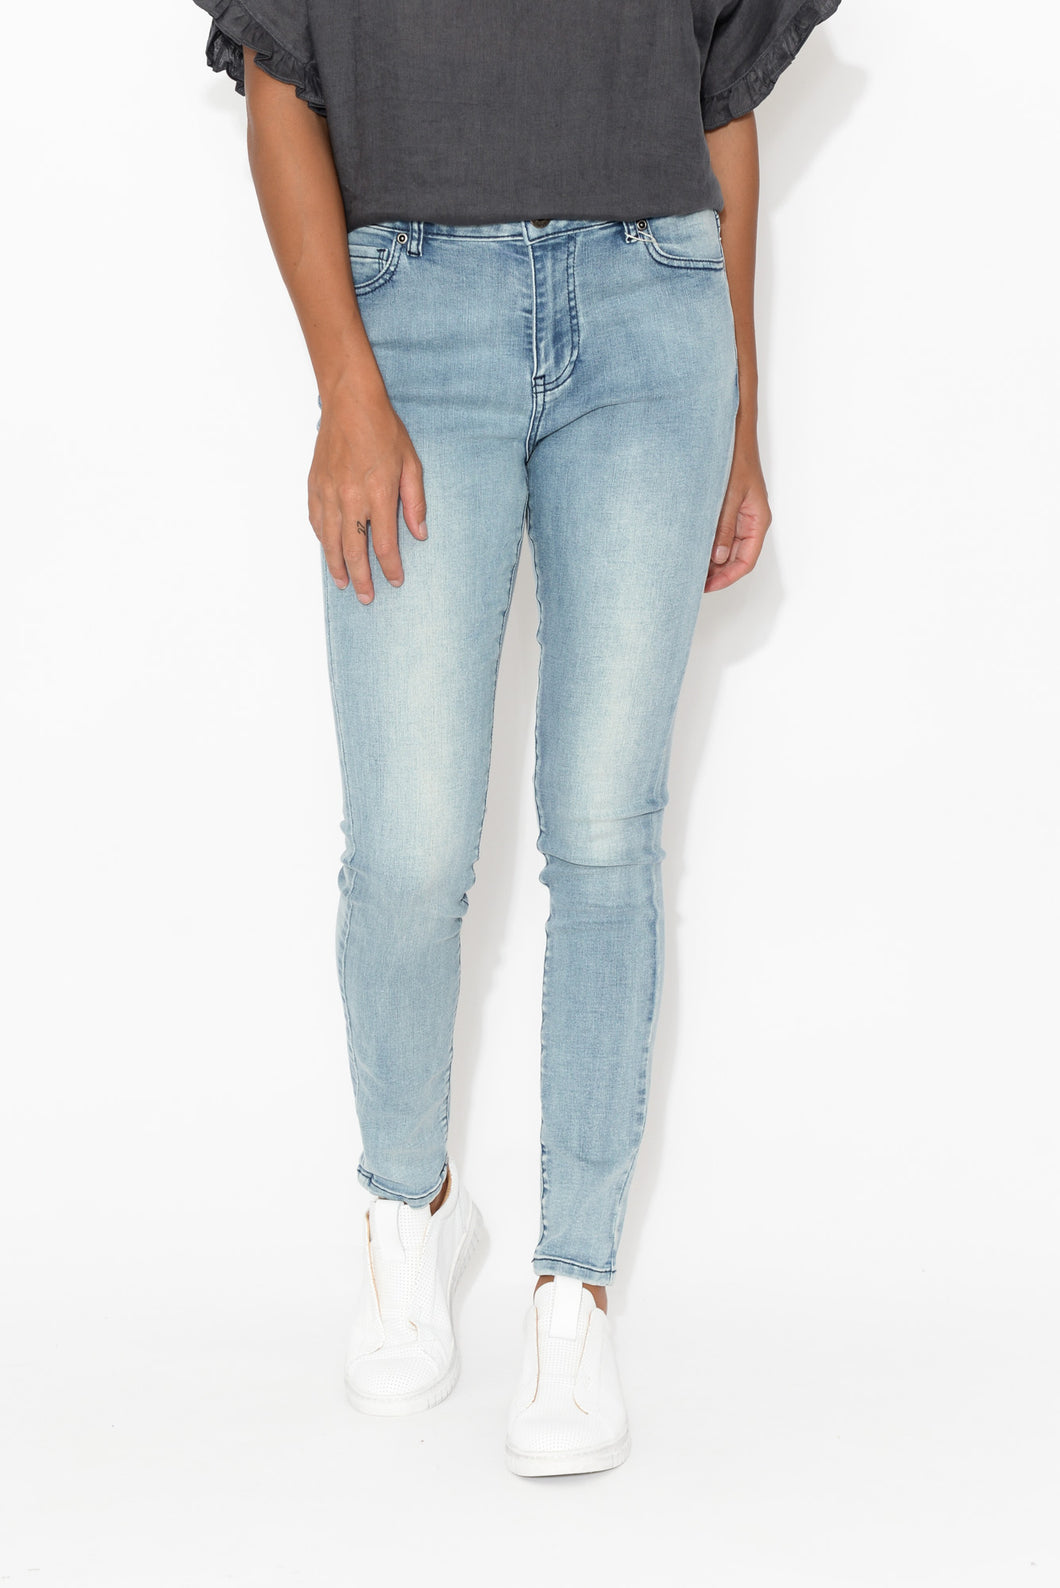 Katika Light Denim Zip Front Jean